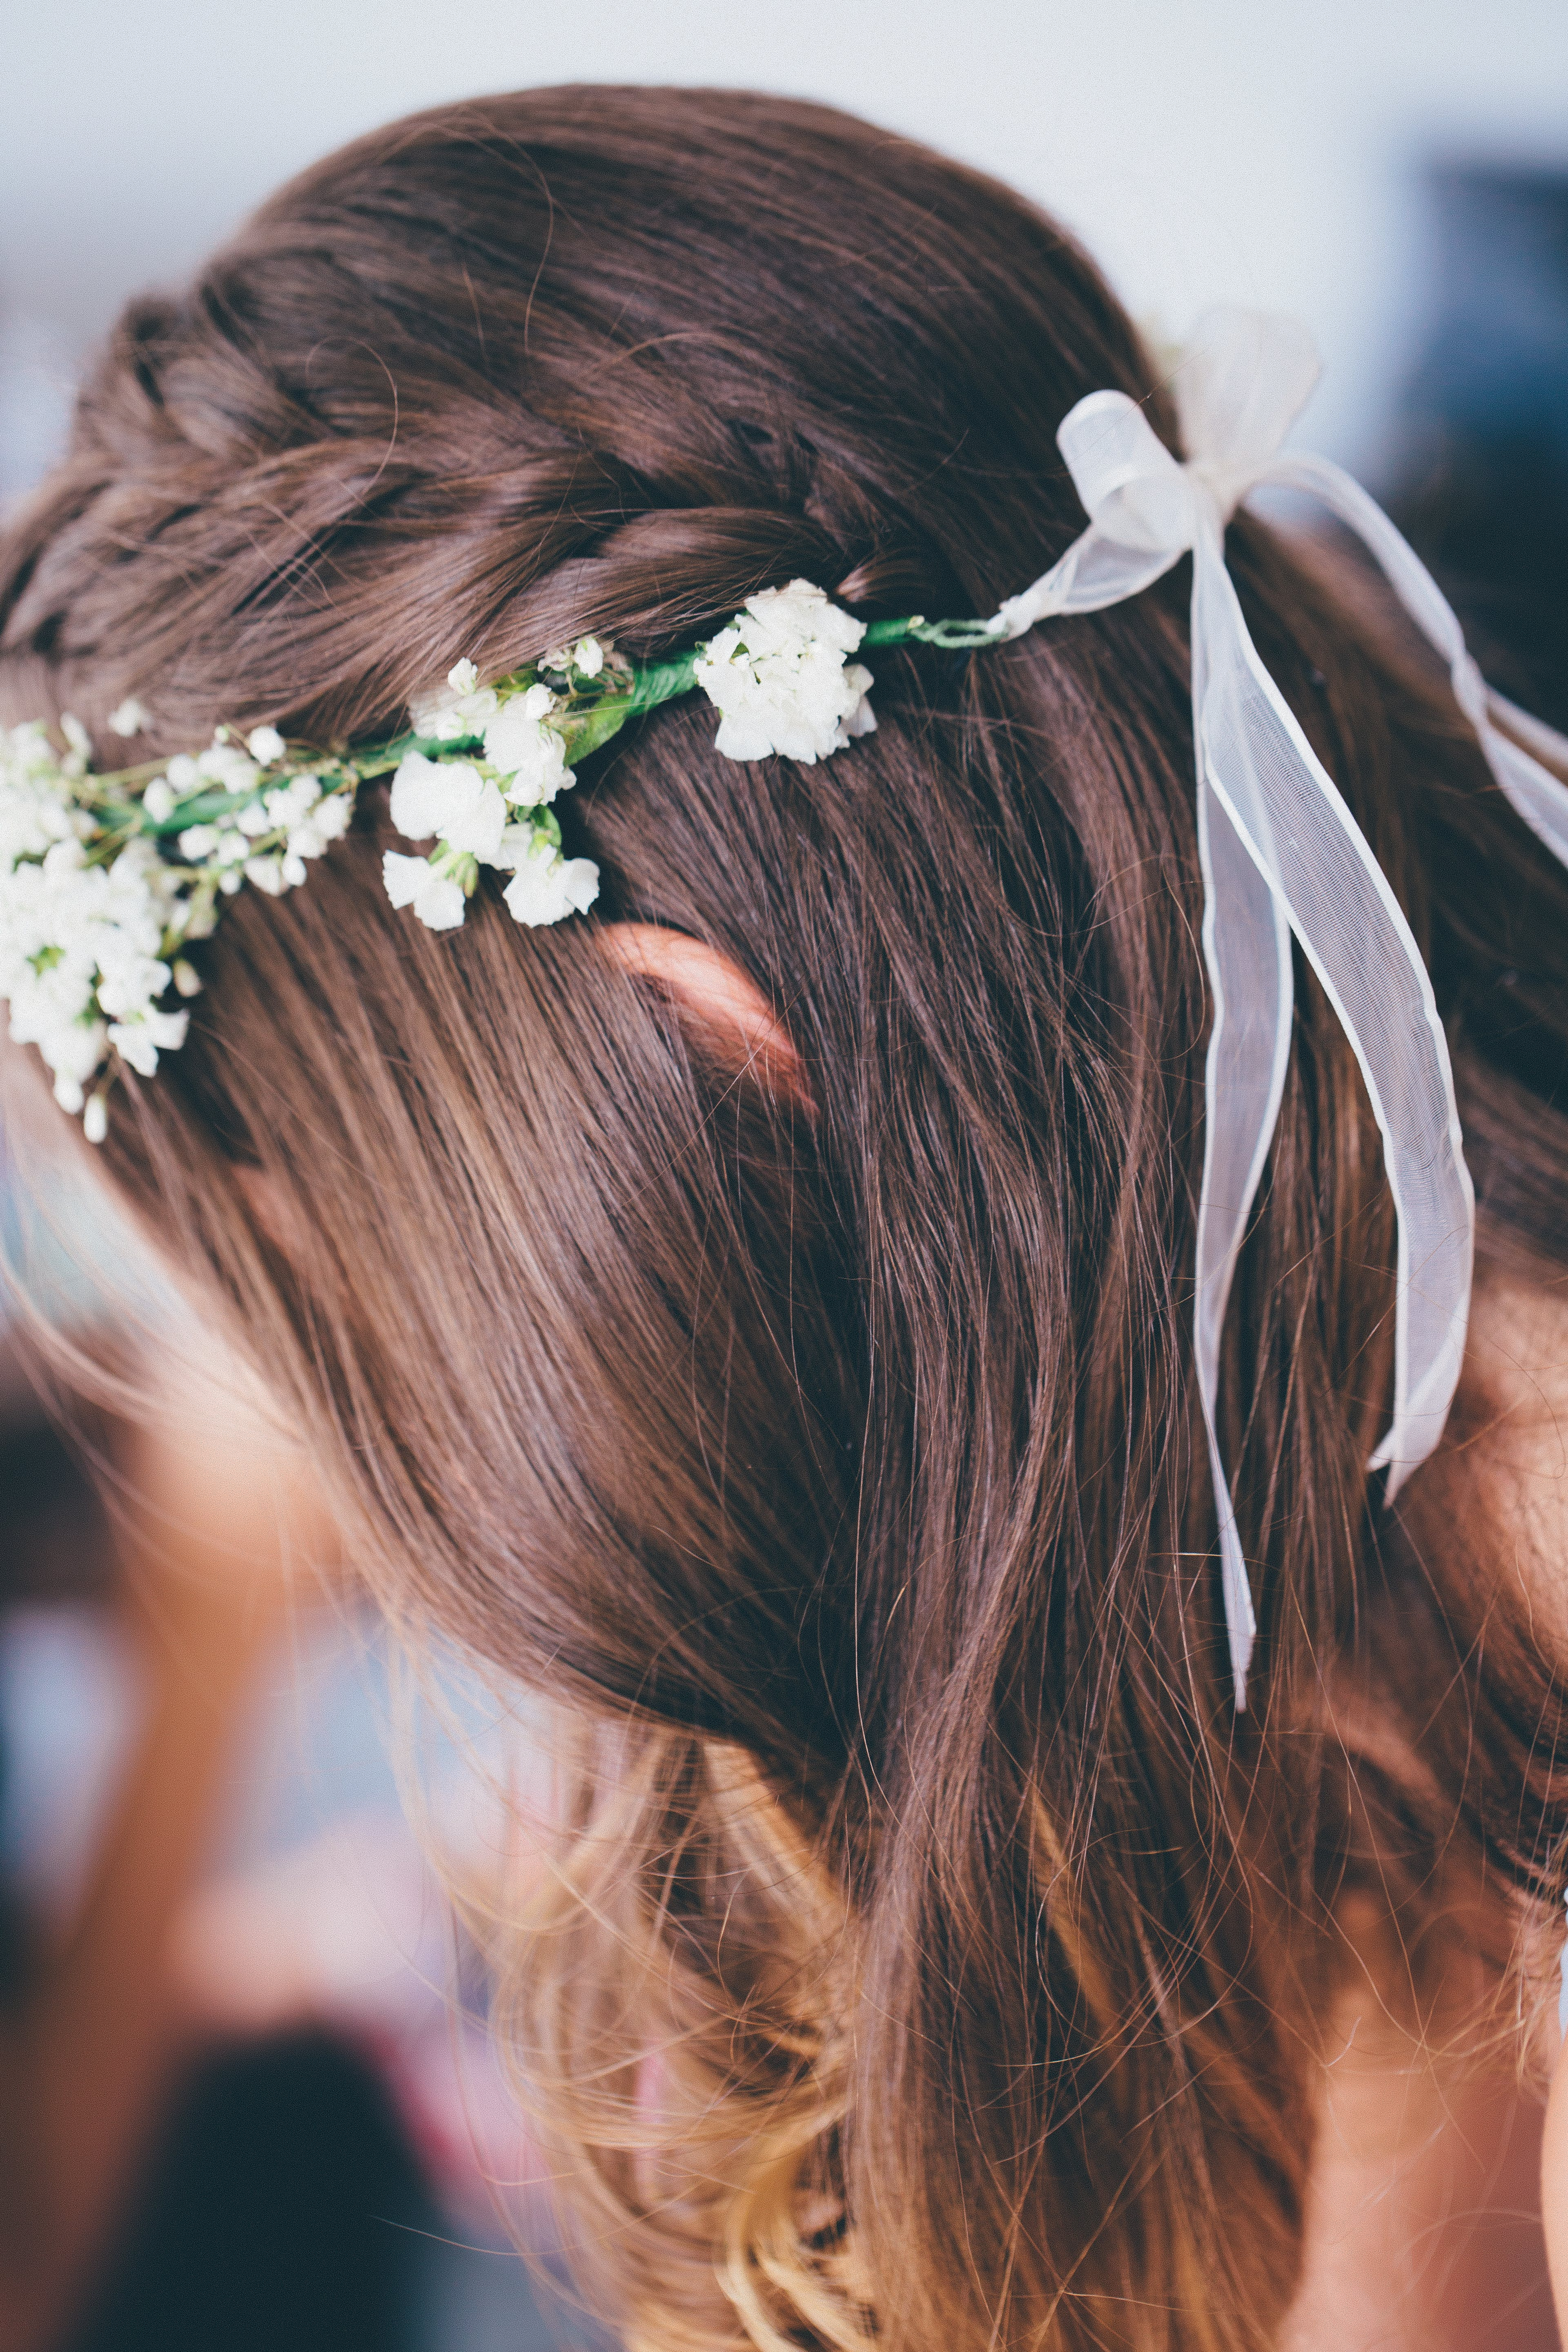 Selective Focus Photo of Woman Wearing Floral Headdress